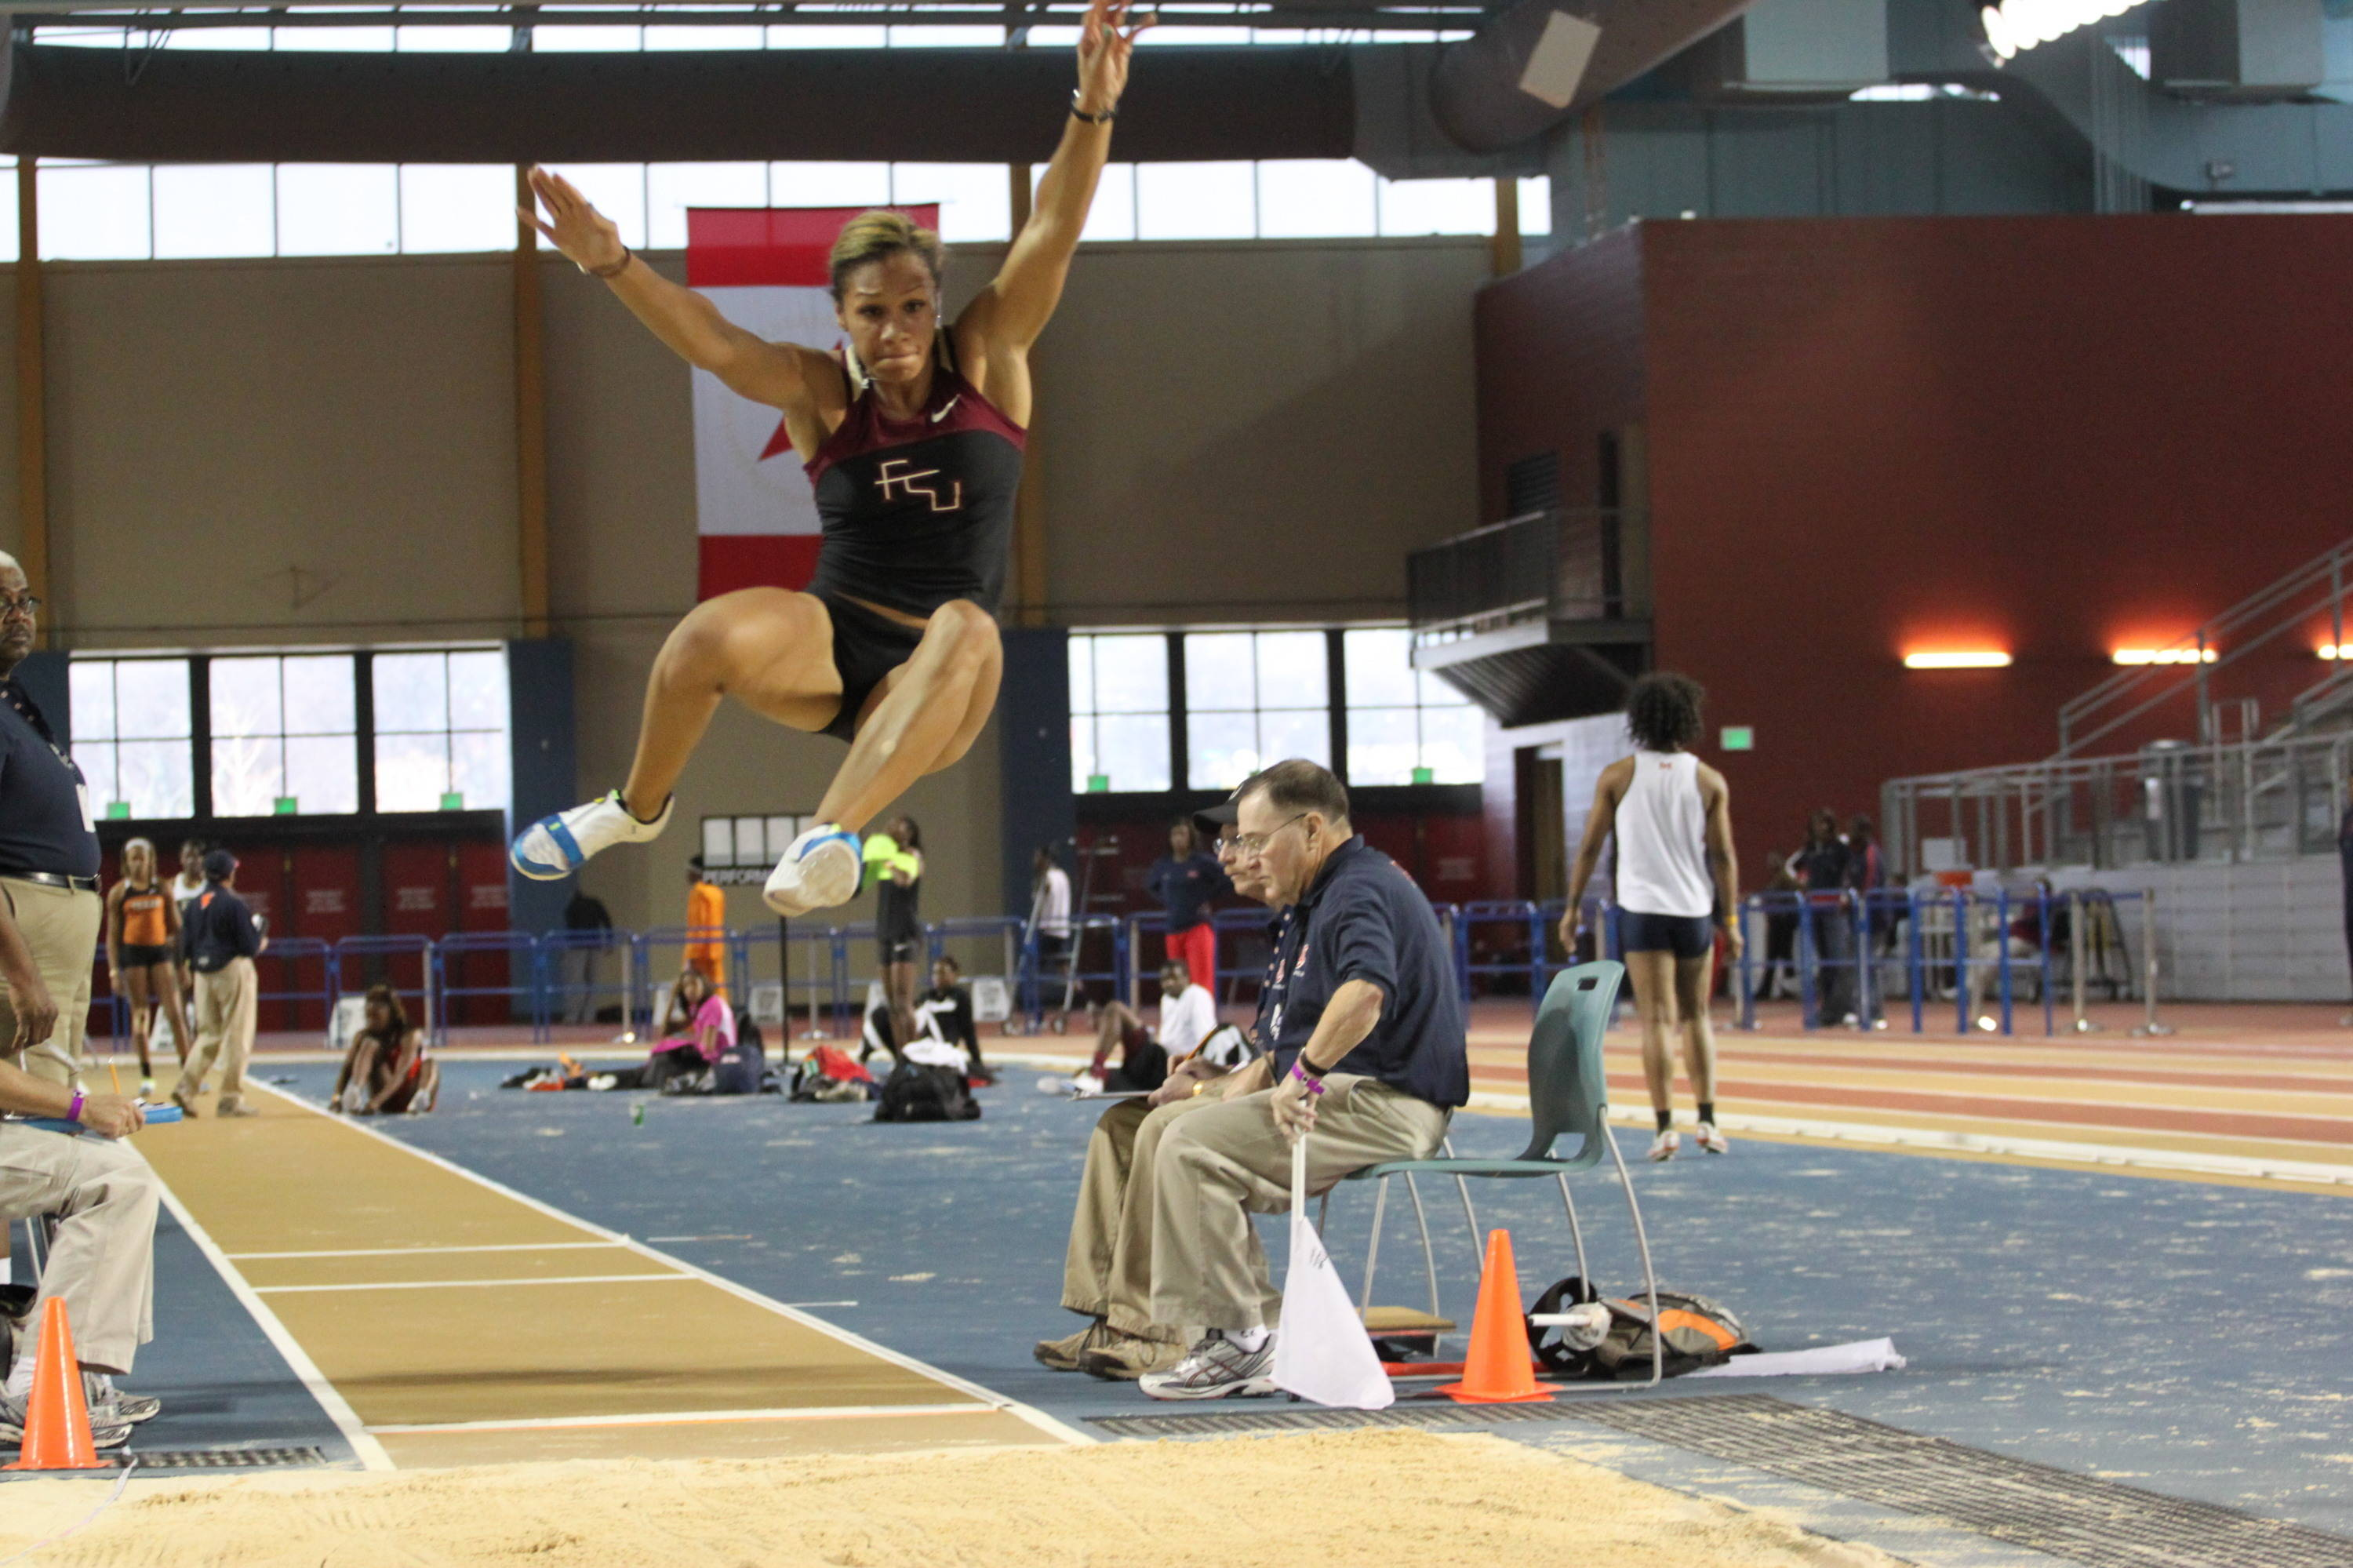 Amy Harris finished third in the long jump with a solid early-season leap of 19-10 1/2.